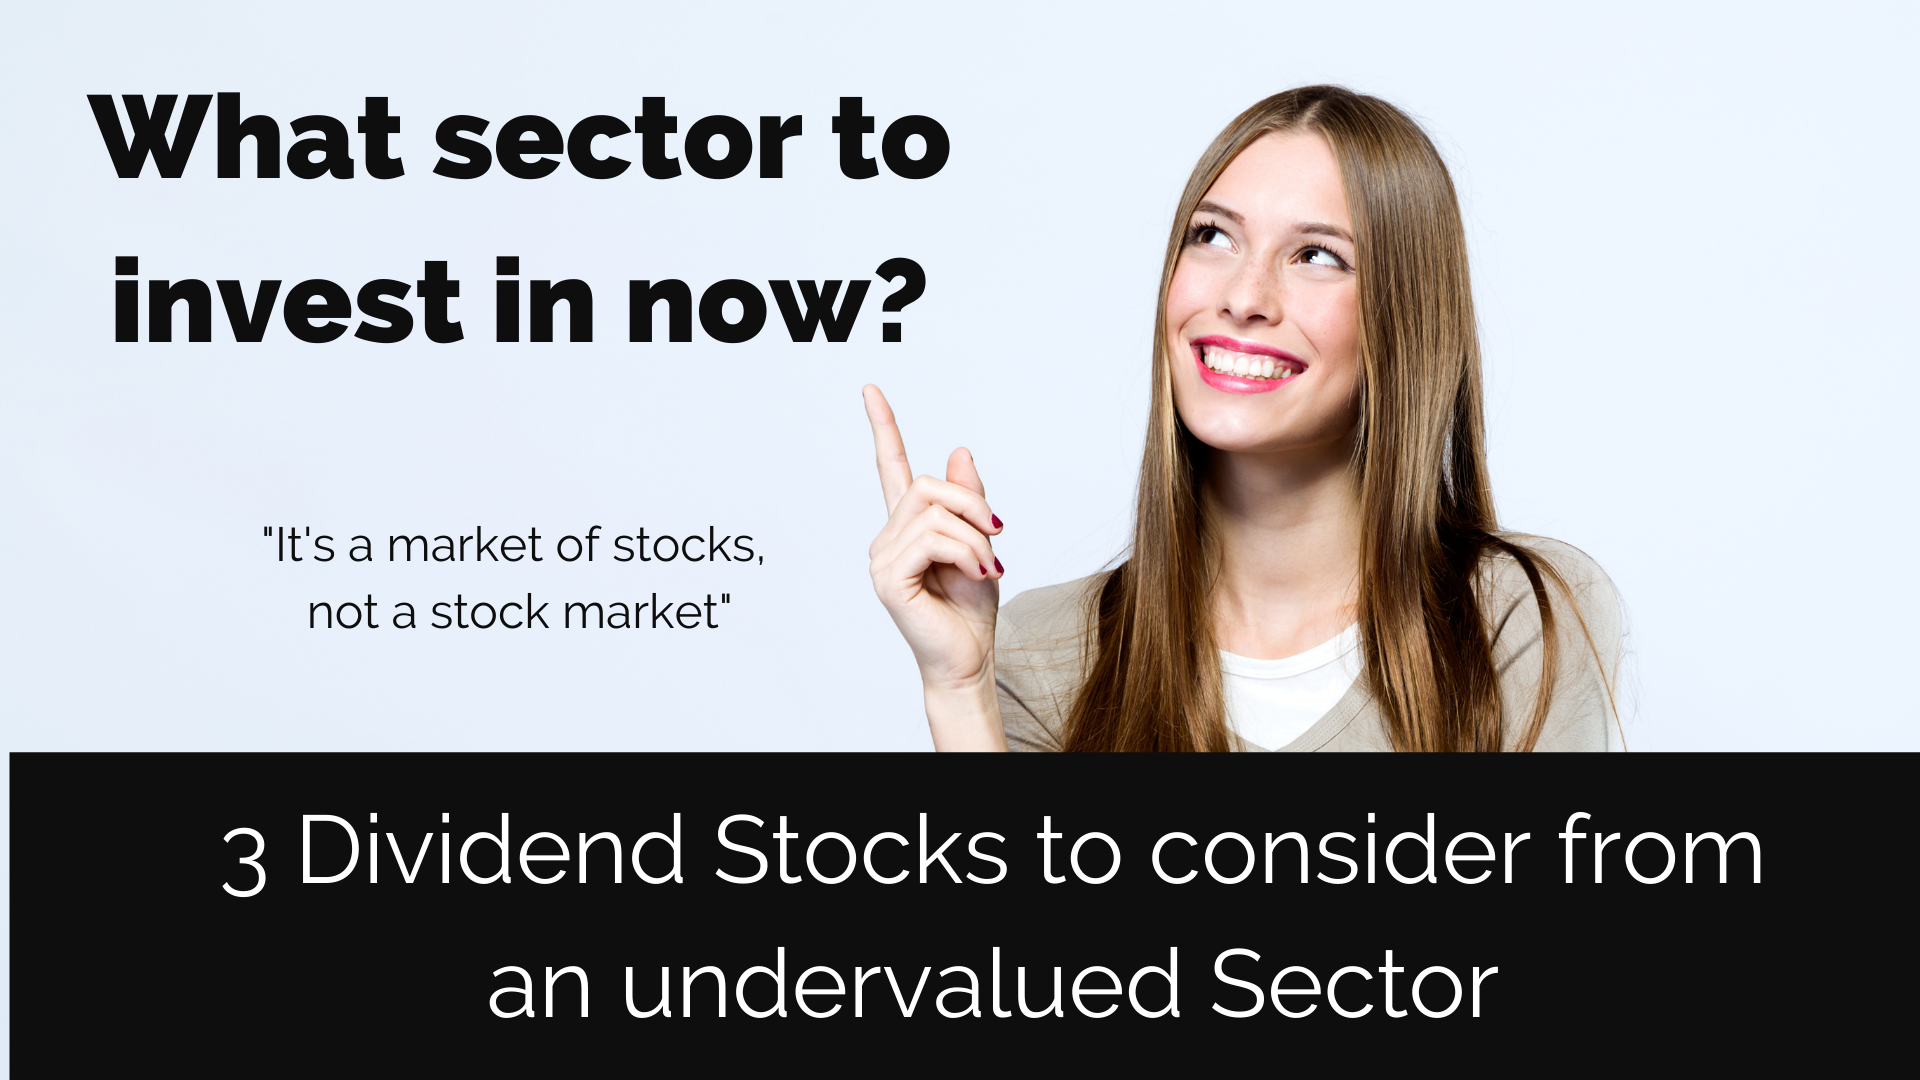 What sector to invest in now